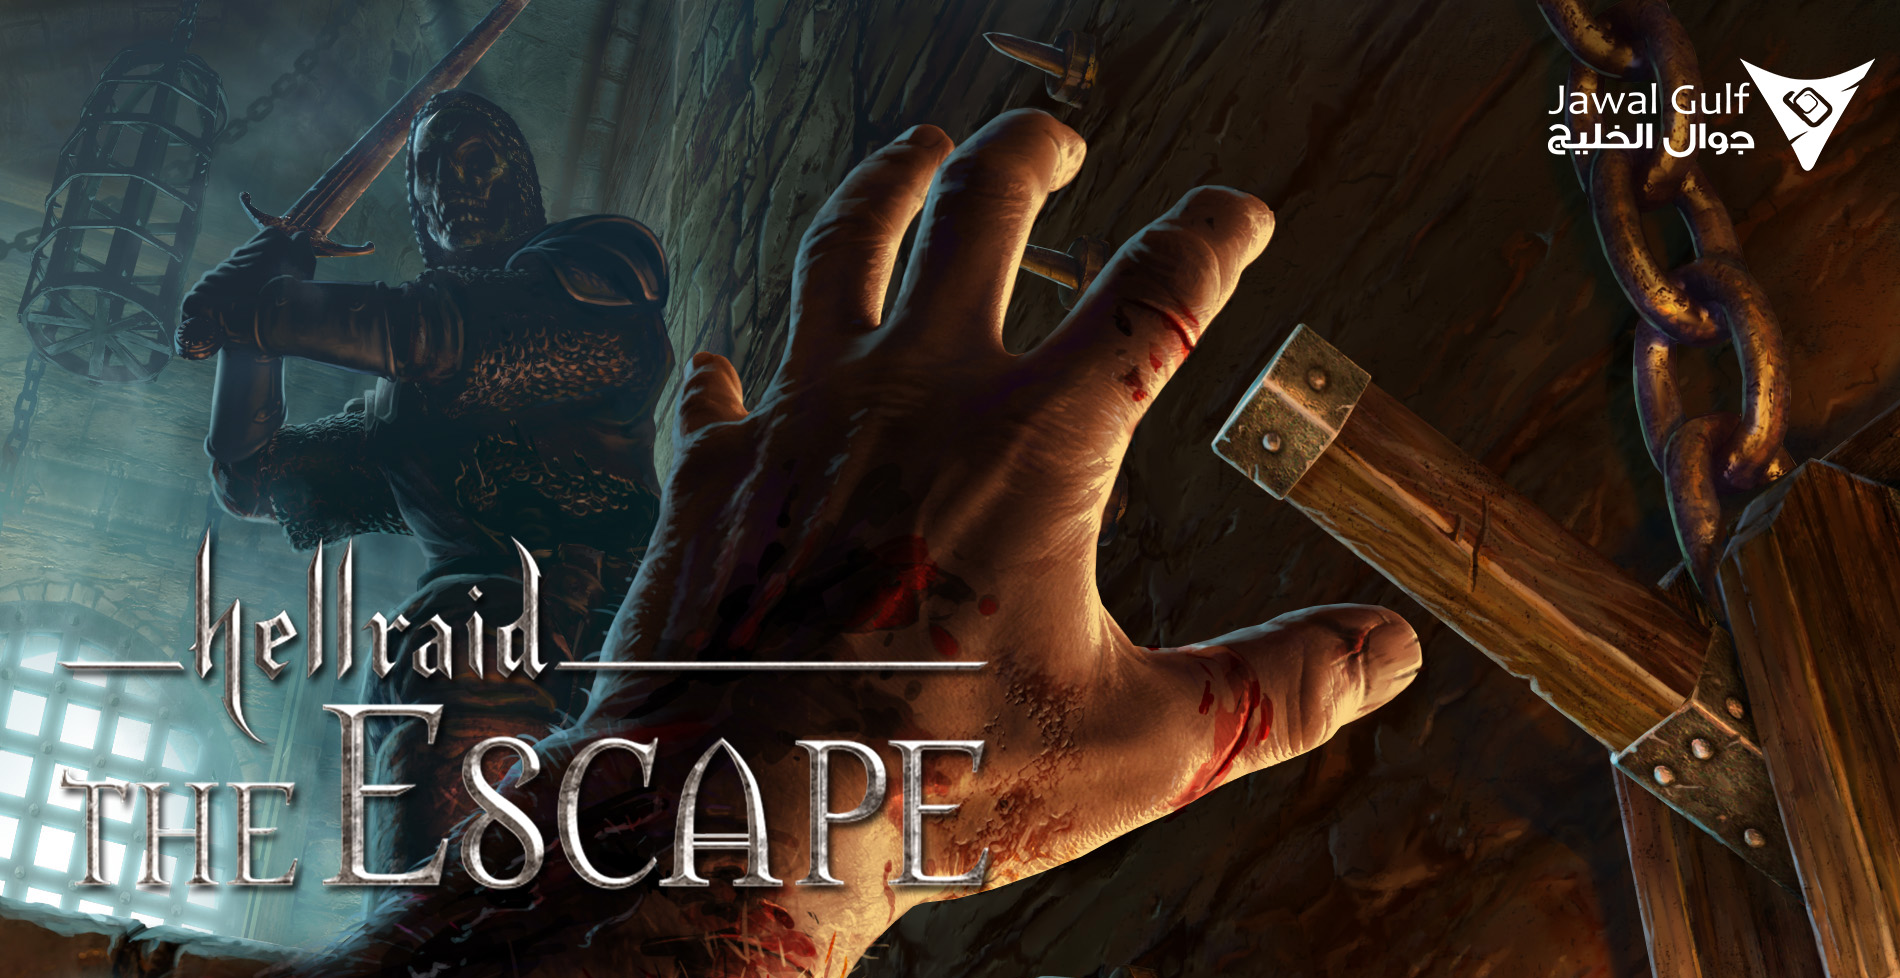 Hellraid The Escape